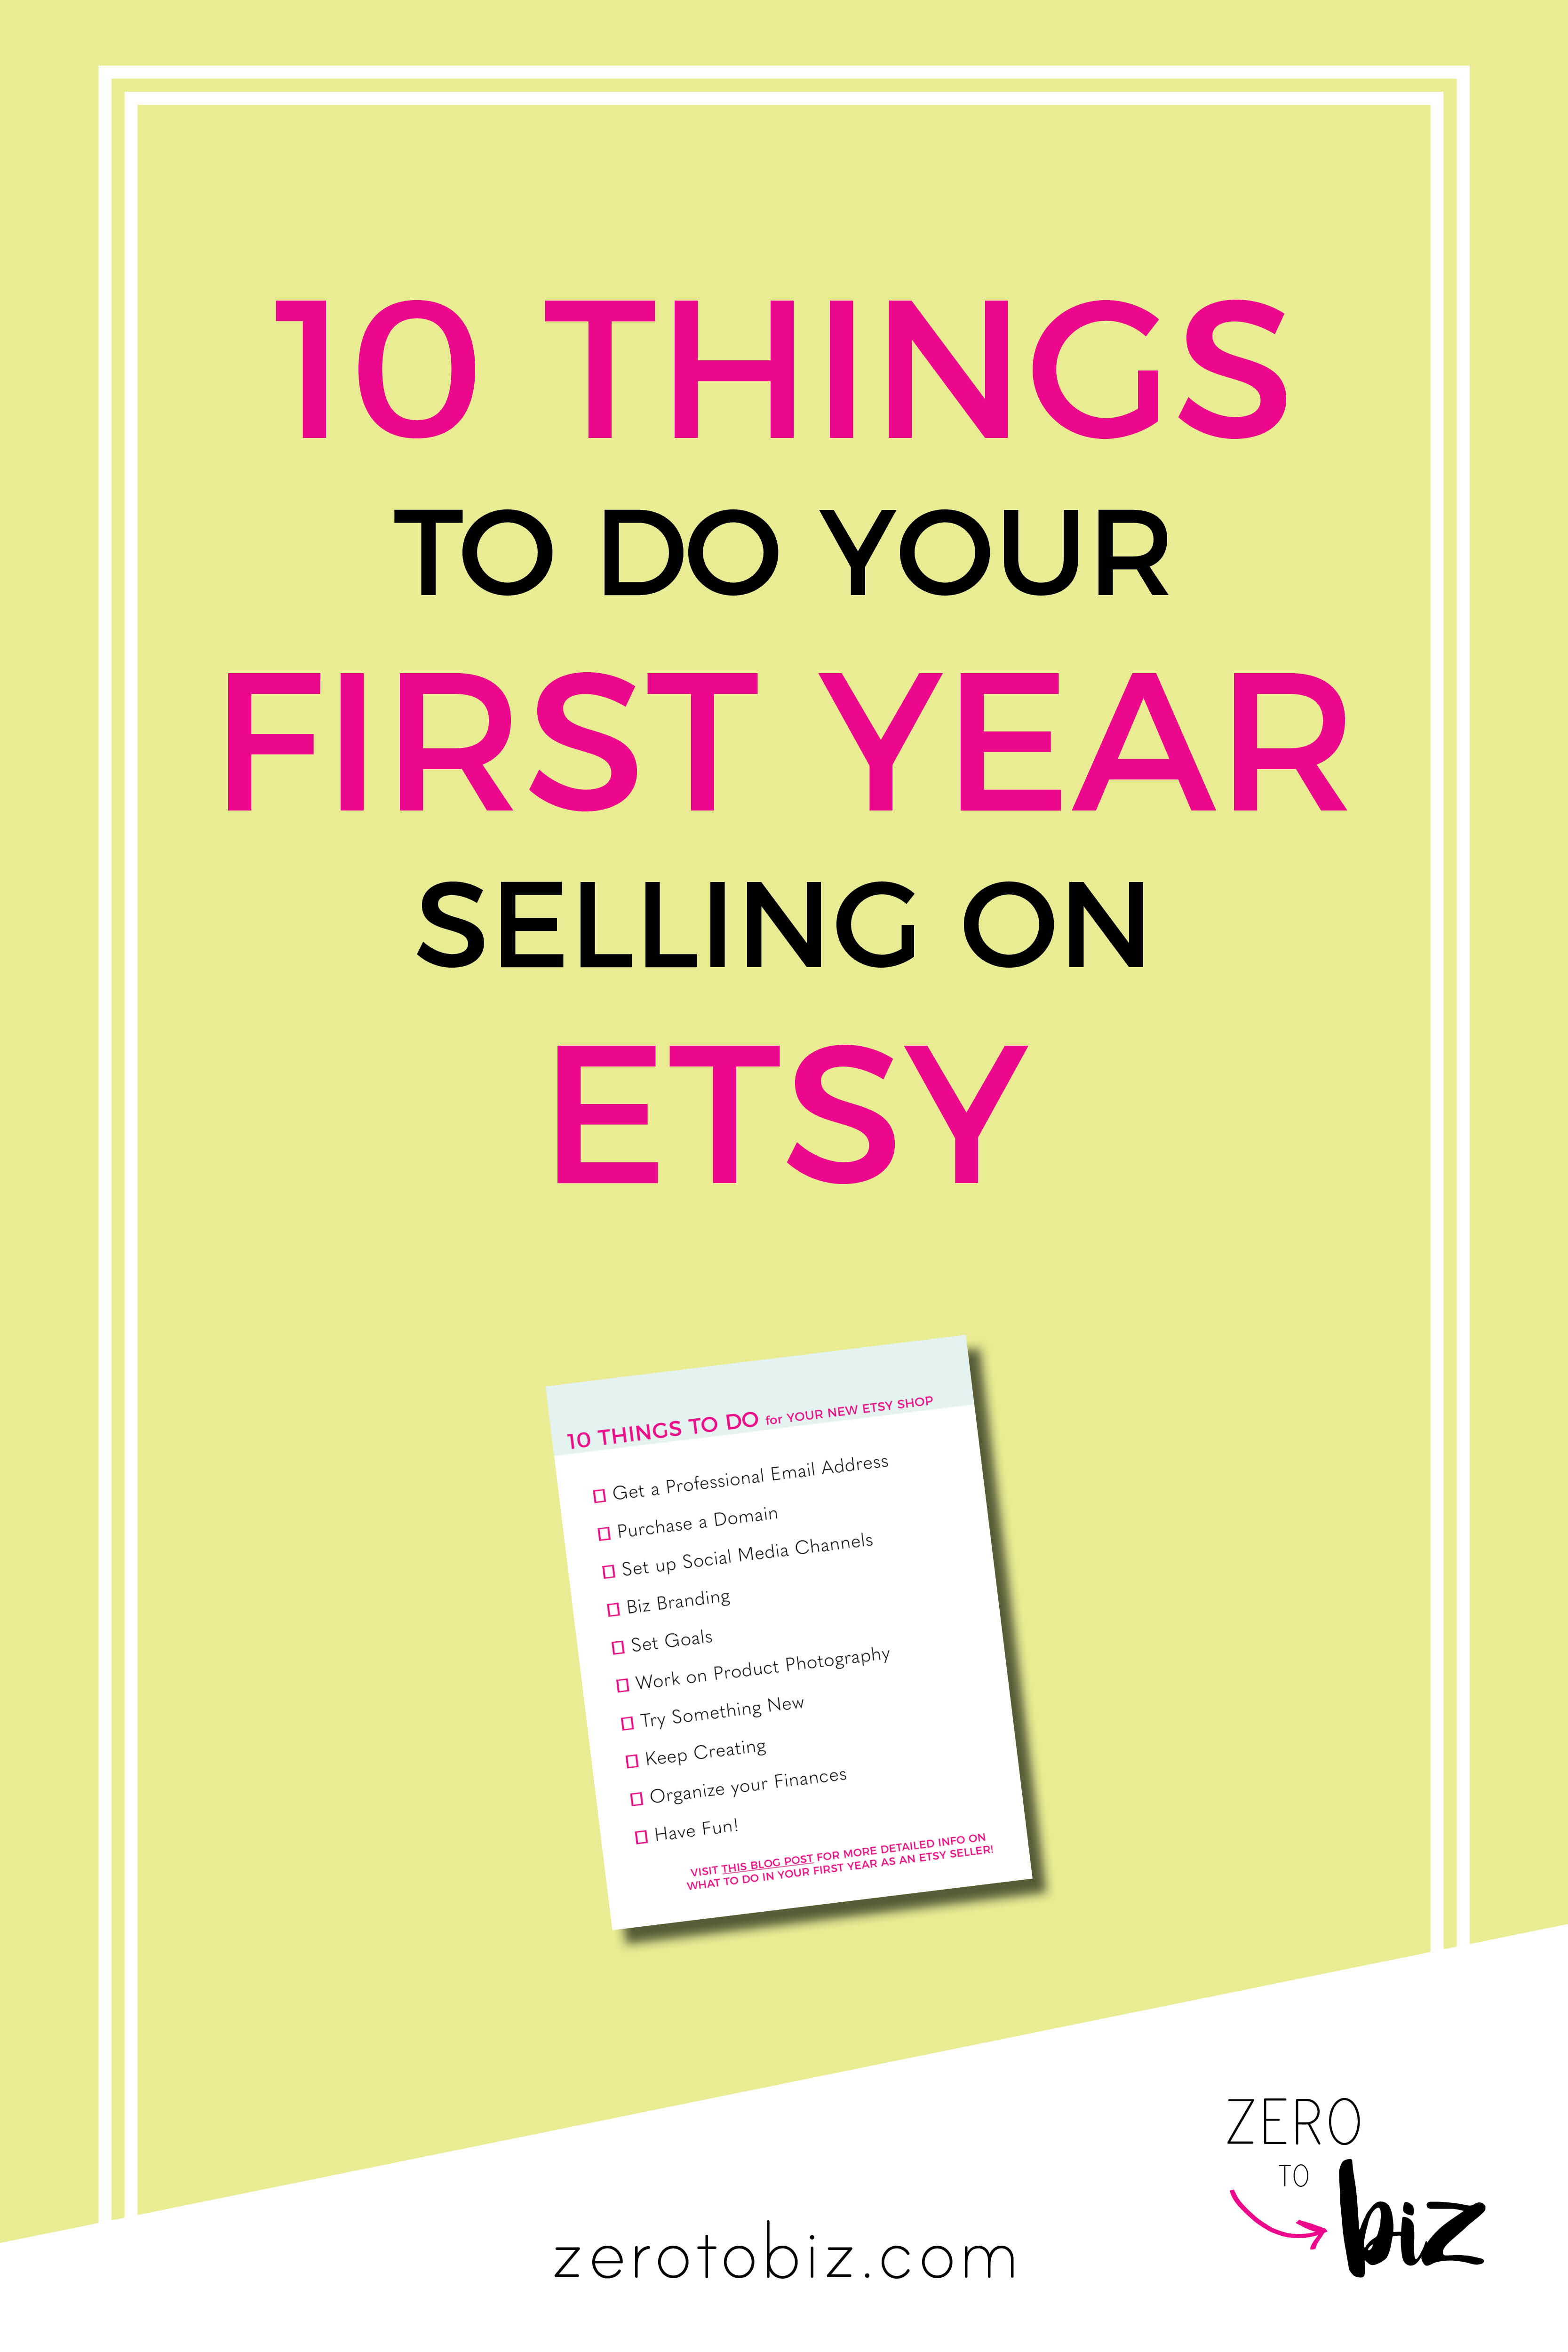 a015661a840e 10 Things To Do the First Year Selling on Etsy - zero to biz